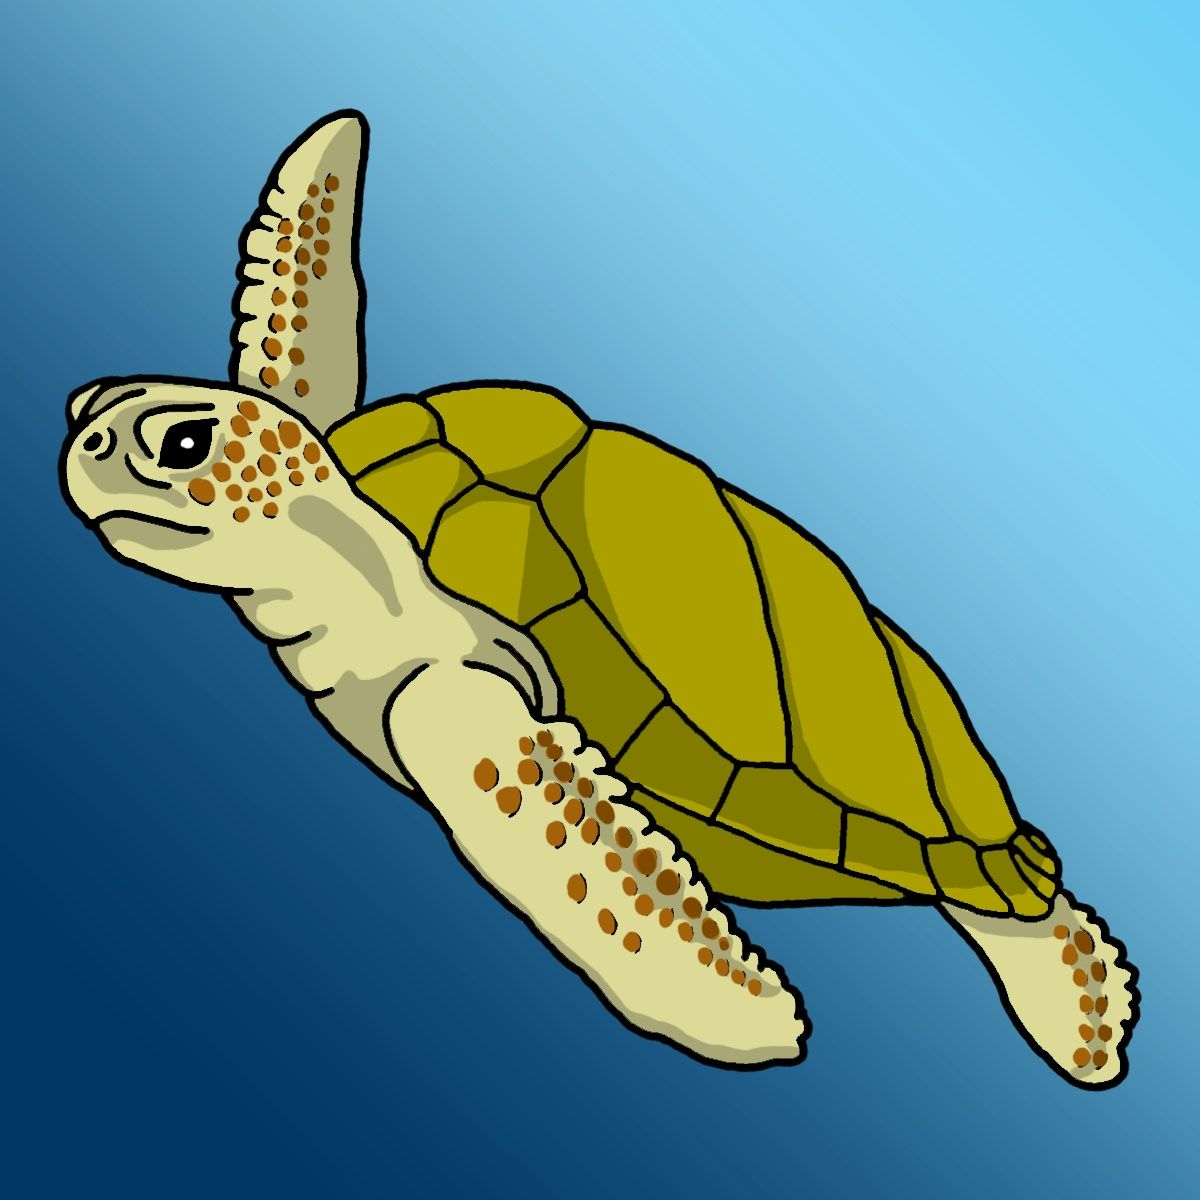 the loggerhead sea turtle weighs approximately 135 kg 300